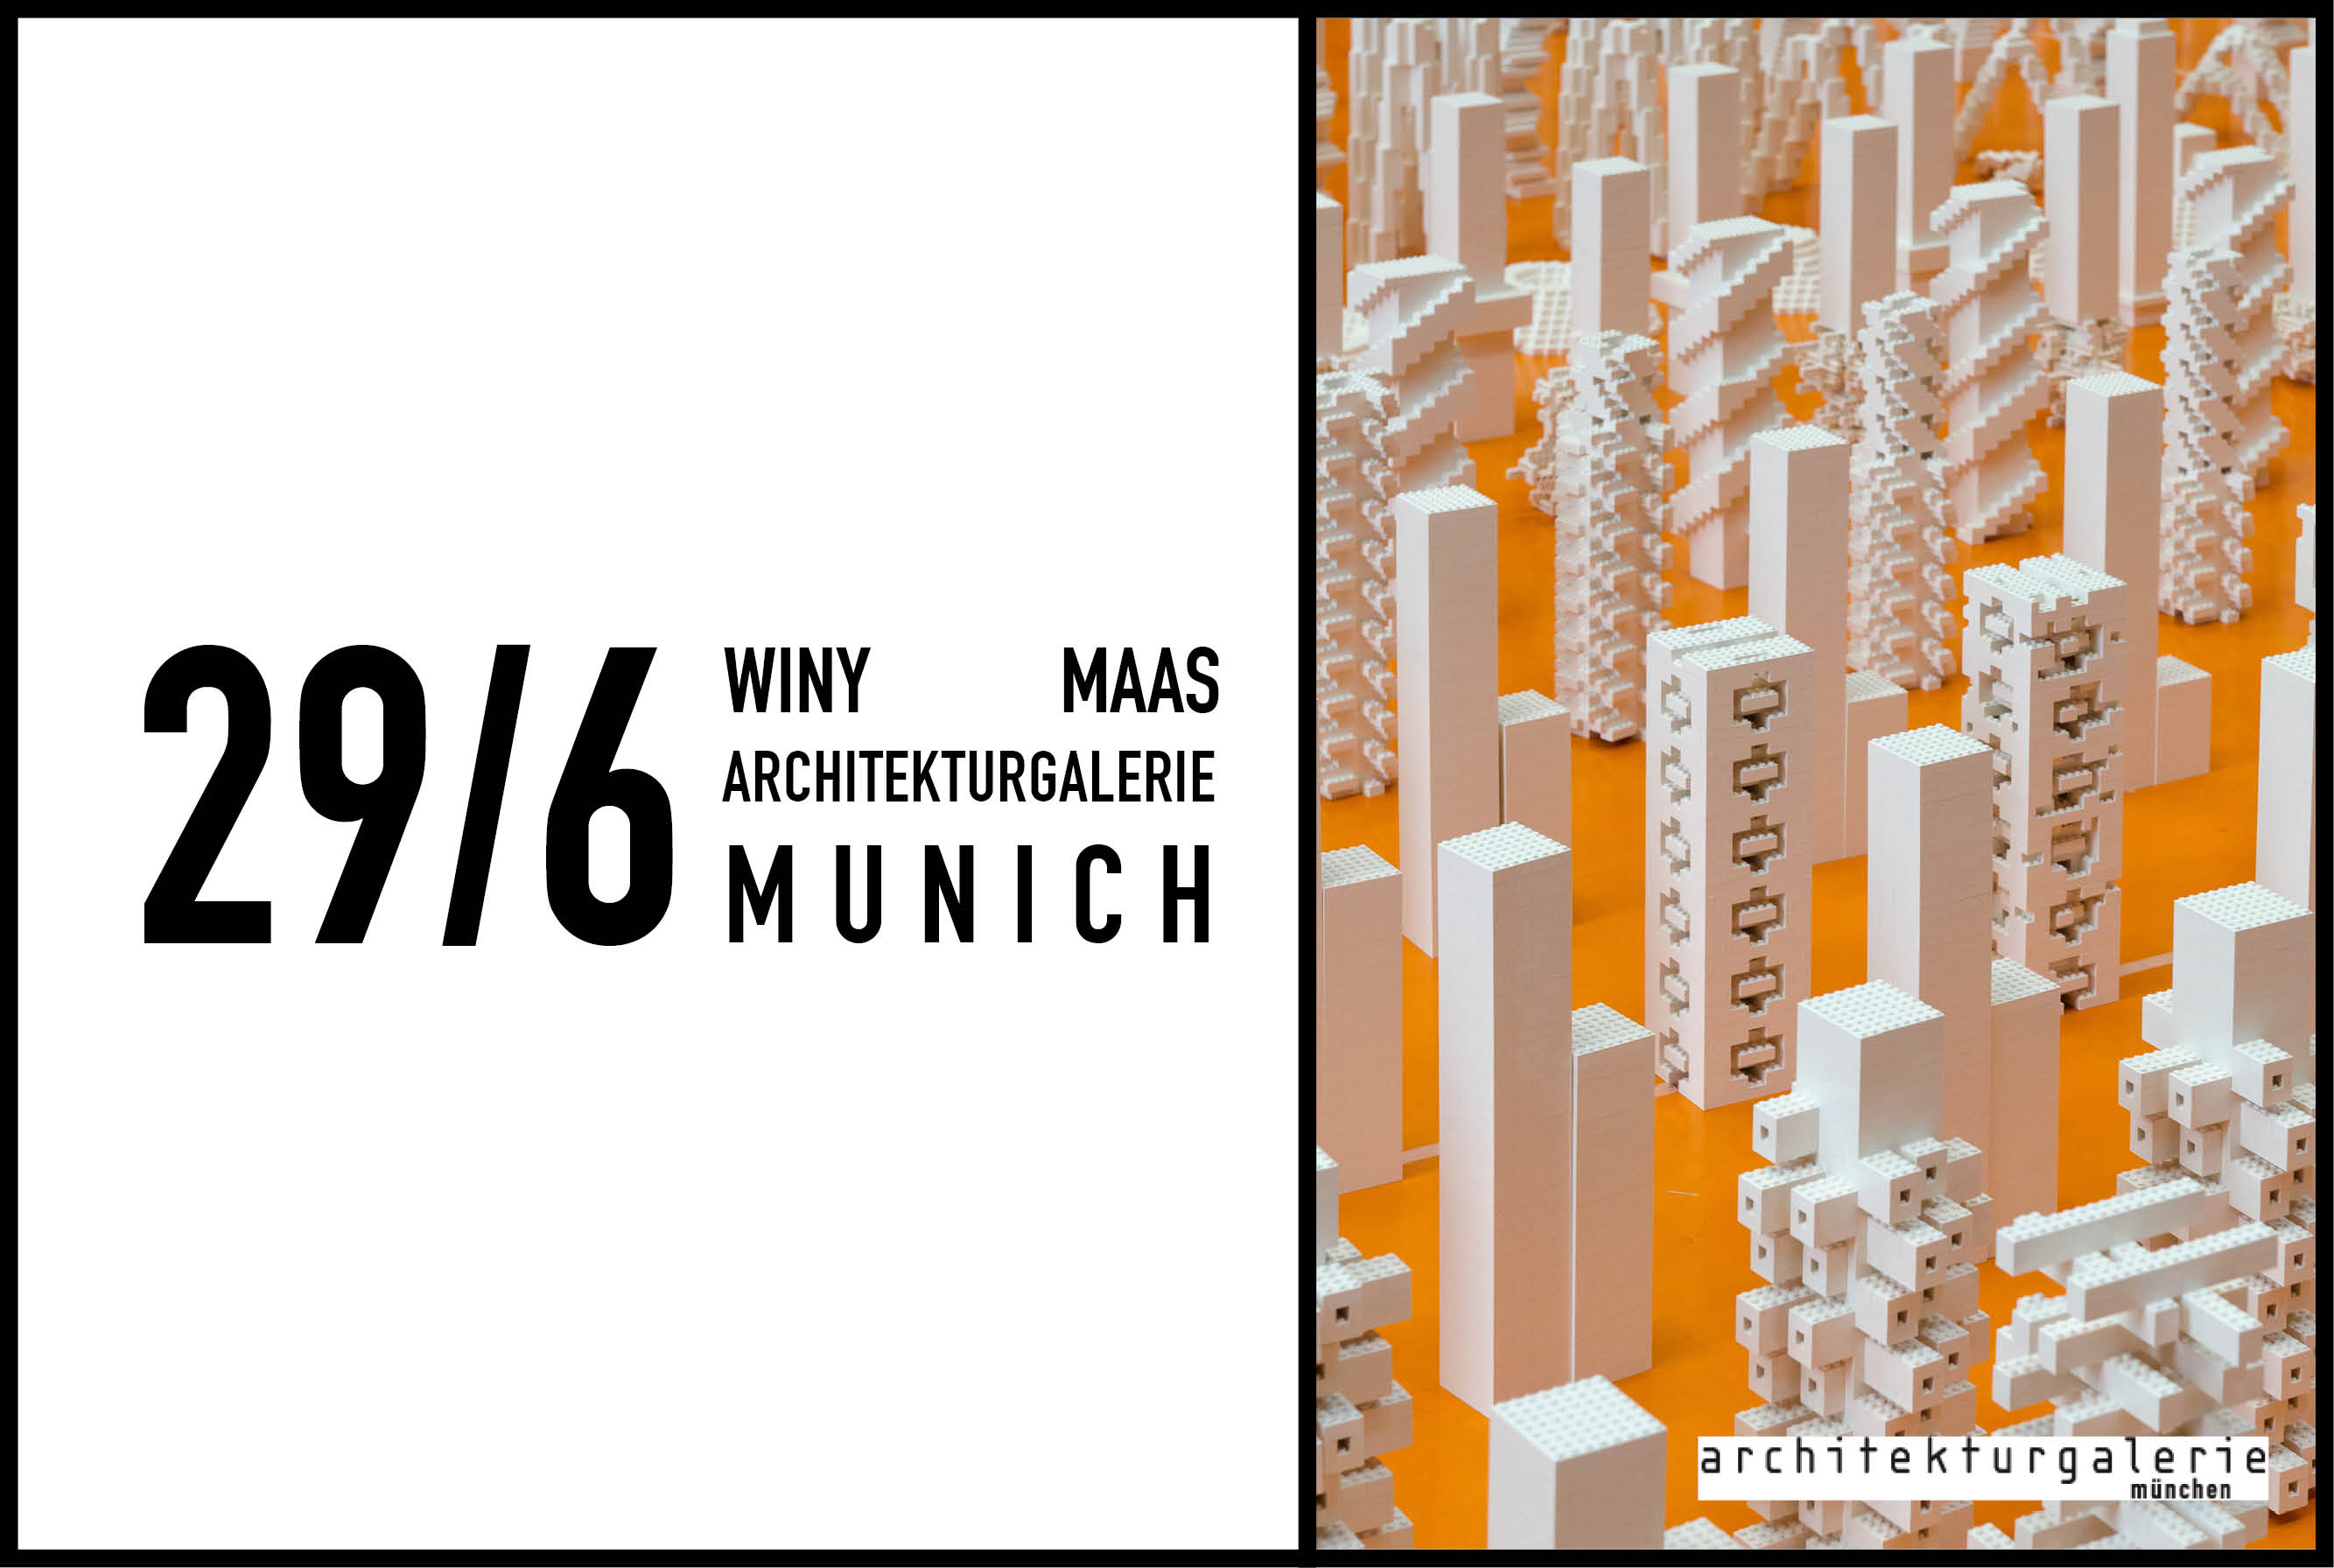 Winy Maas to give presentation at TU Munich to coincide with The Why Factory exhibition at Architekturgalerie, 29 June 2017